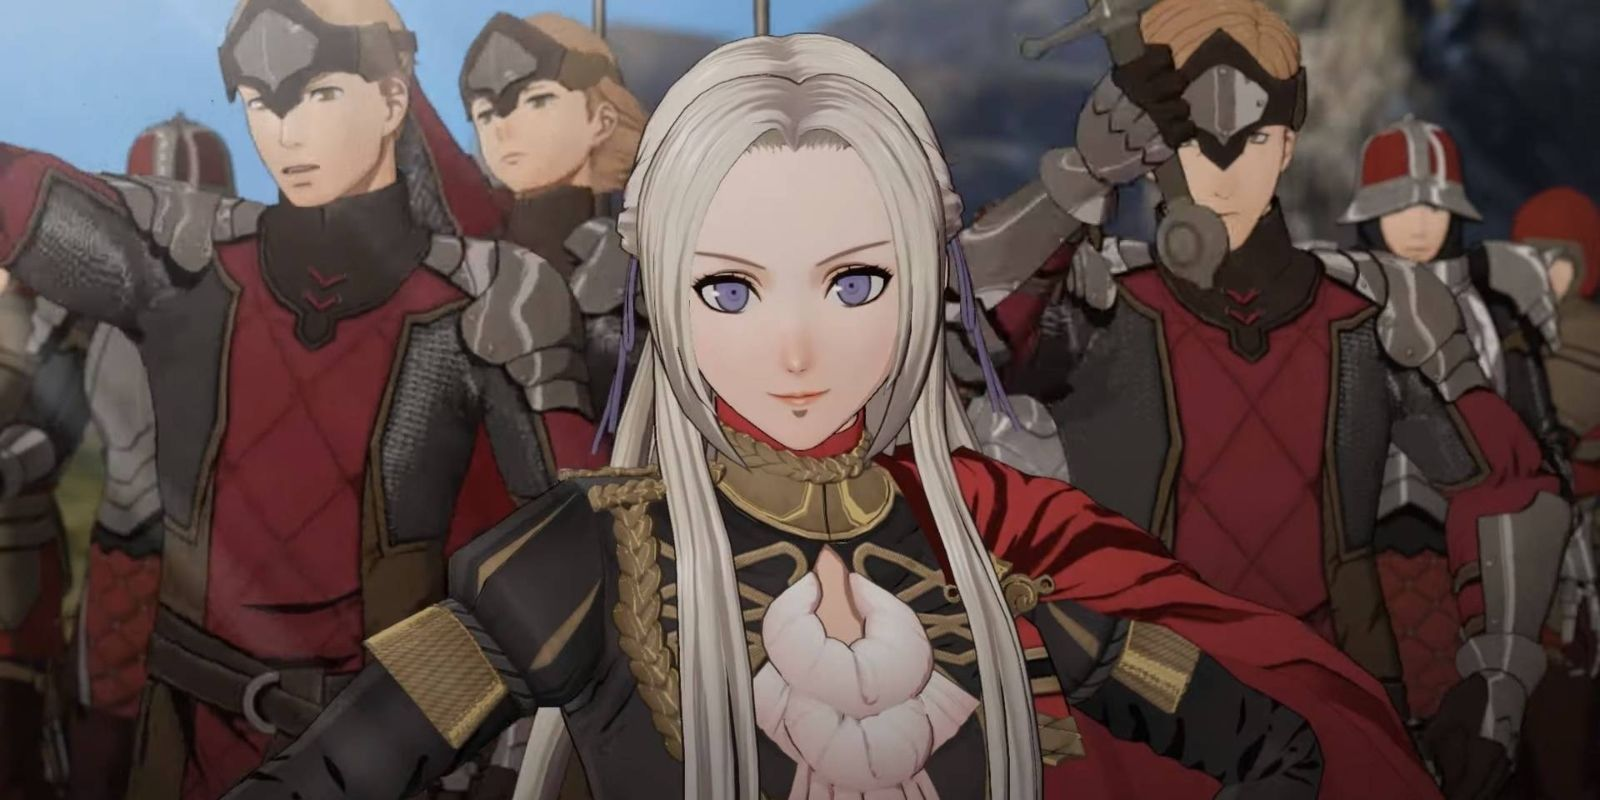 Fire Emblem Series First Entry is Finally Coming Westward